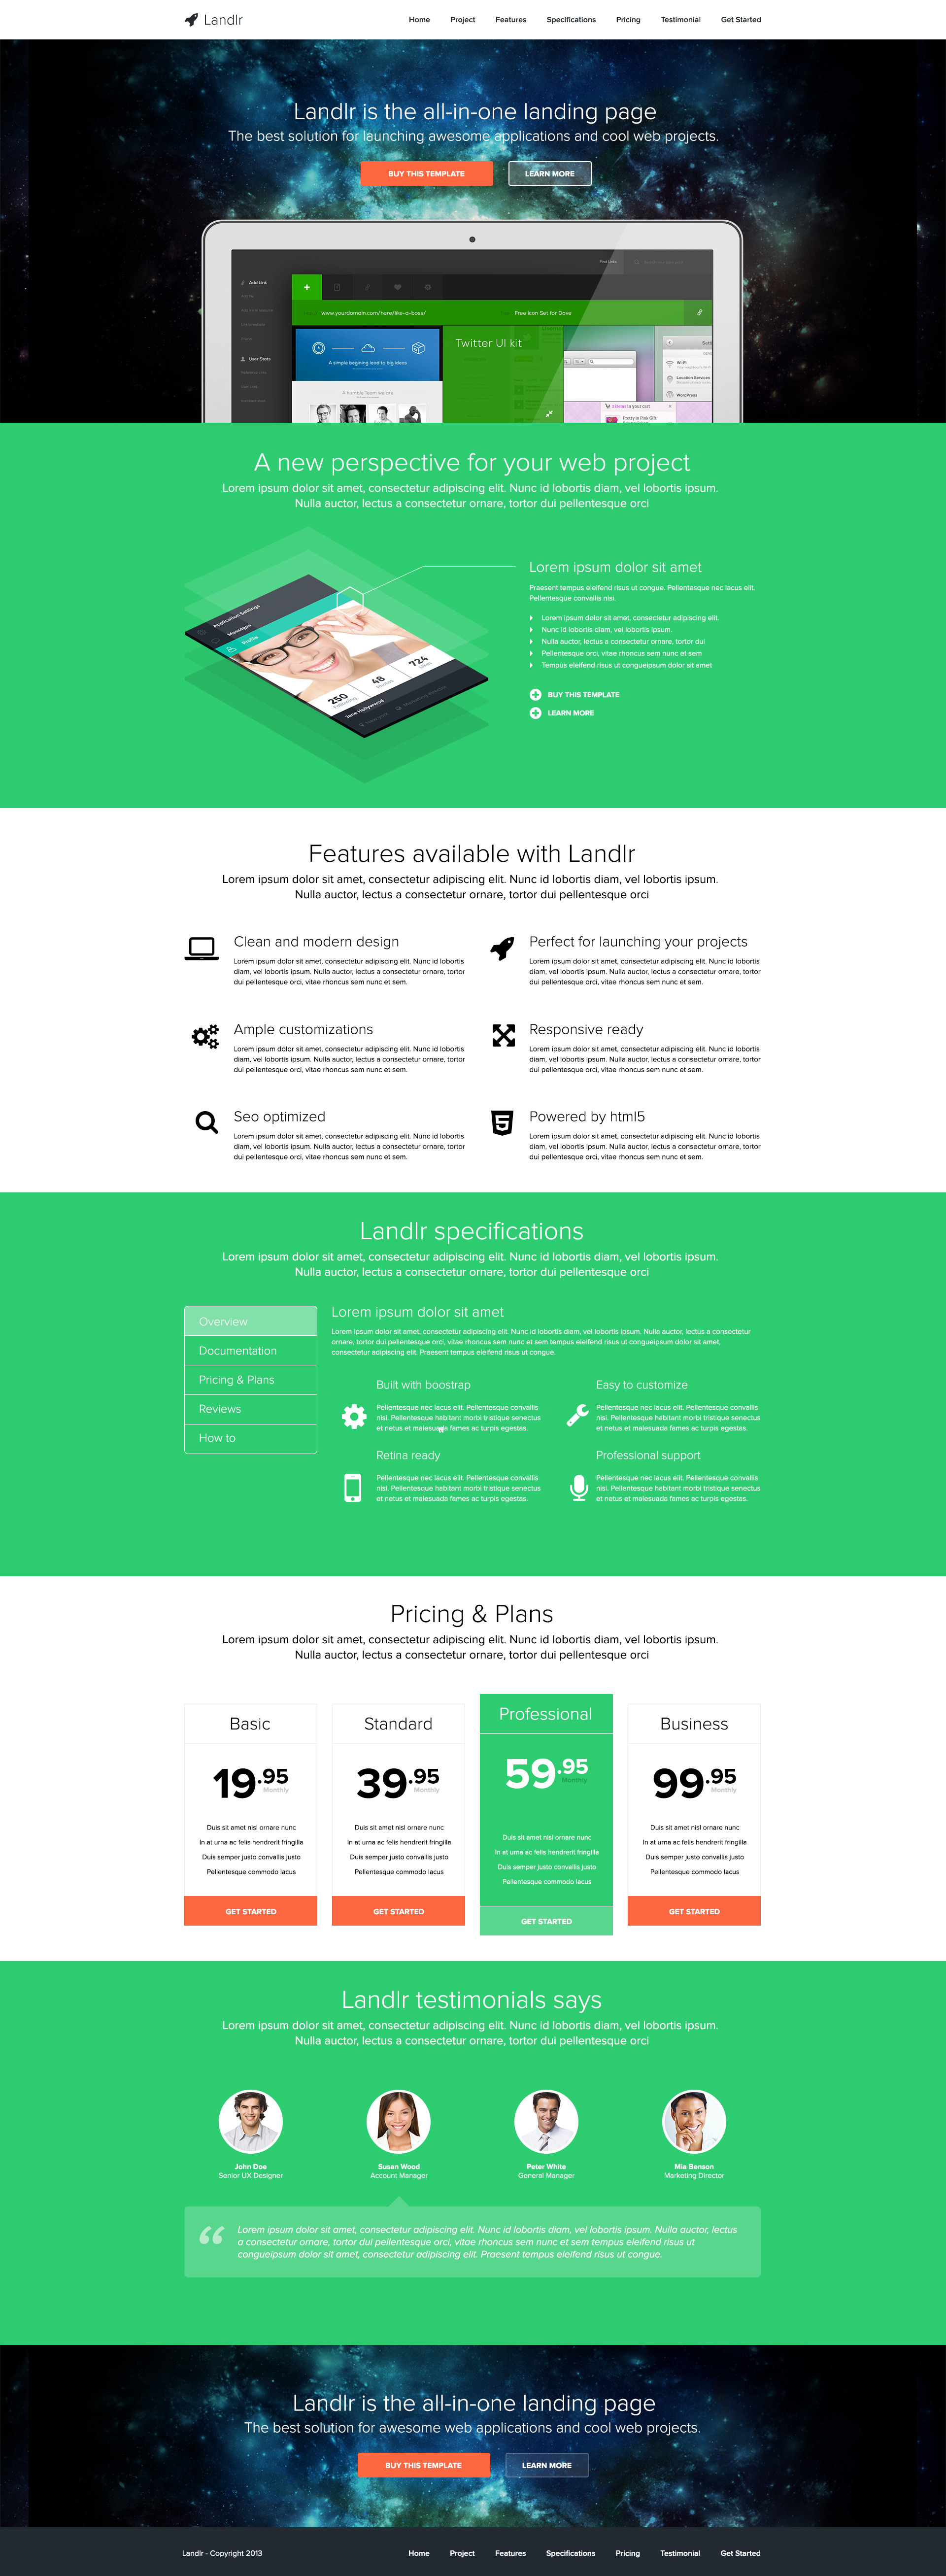 Landlr - The All-in-One Landing Page - Bootstrap